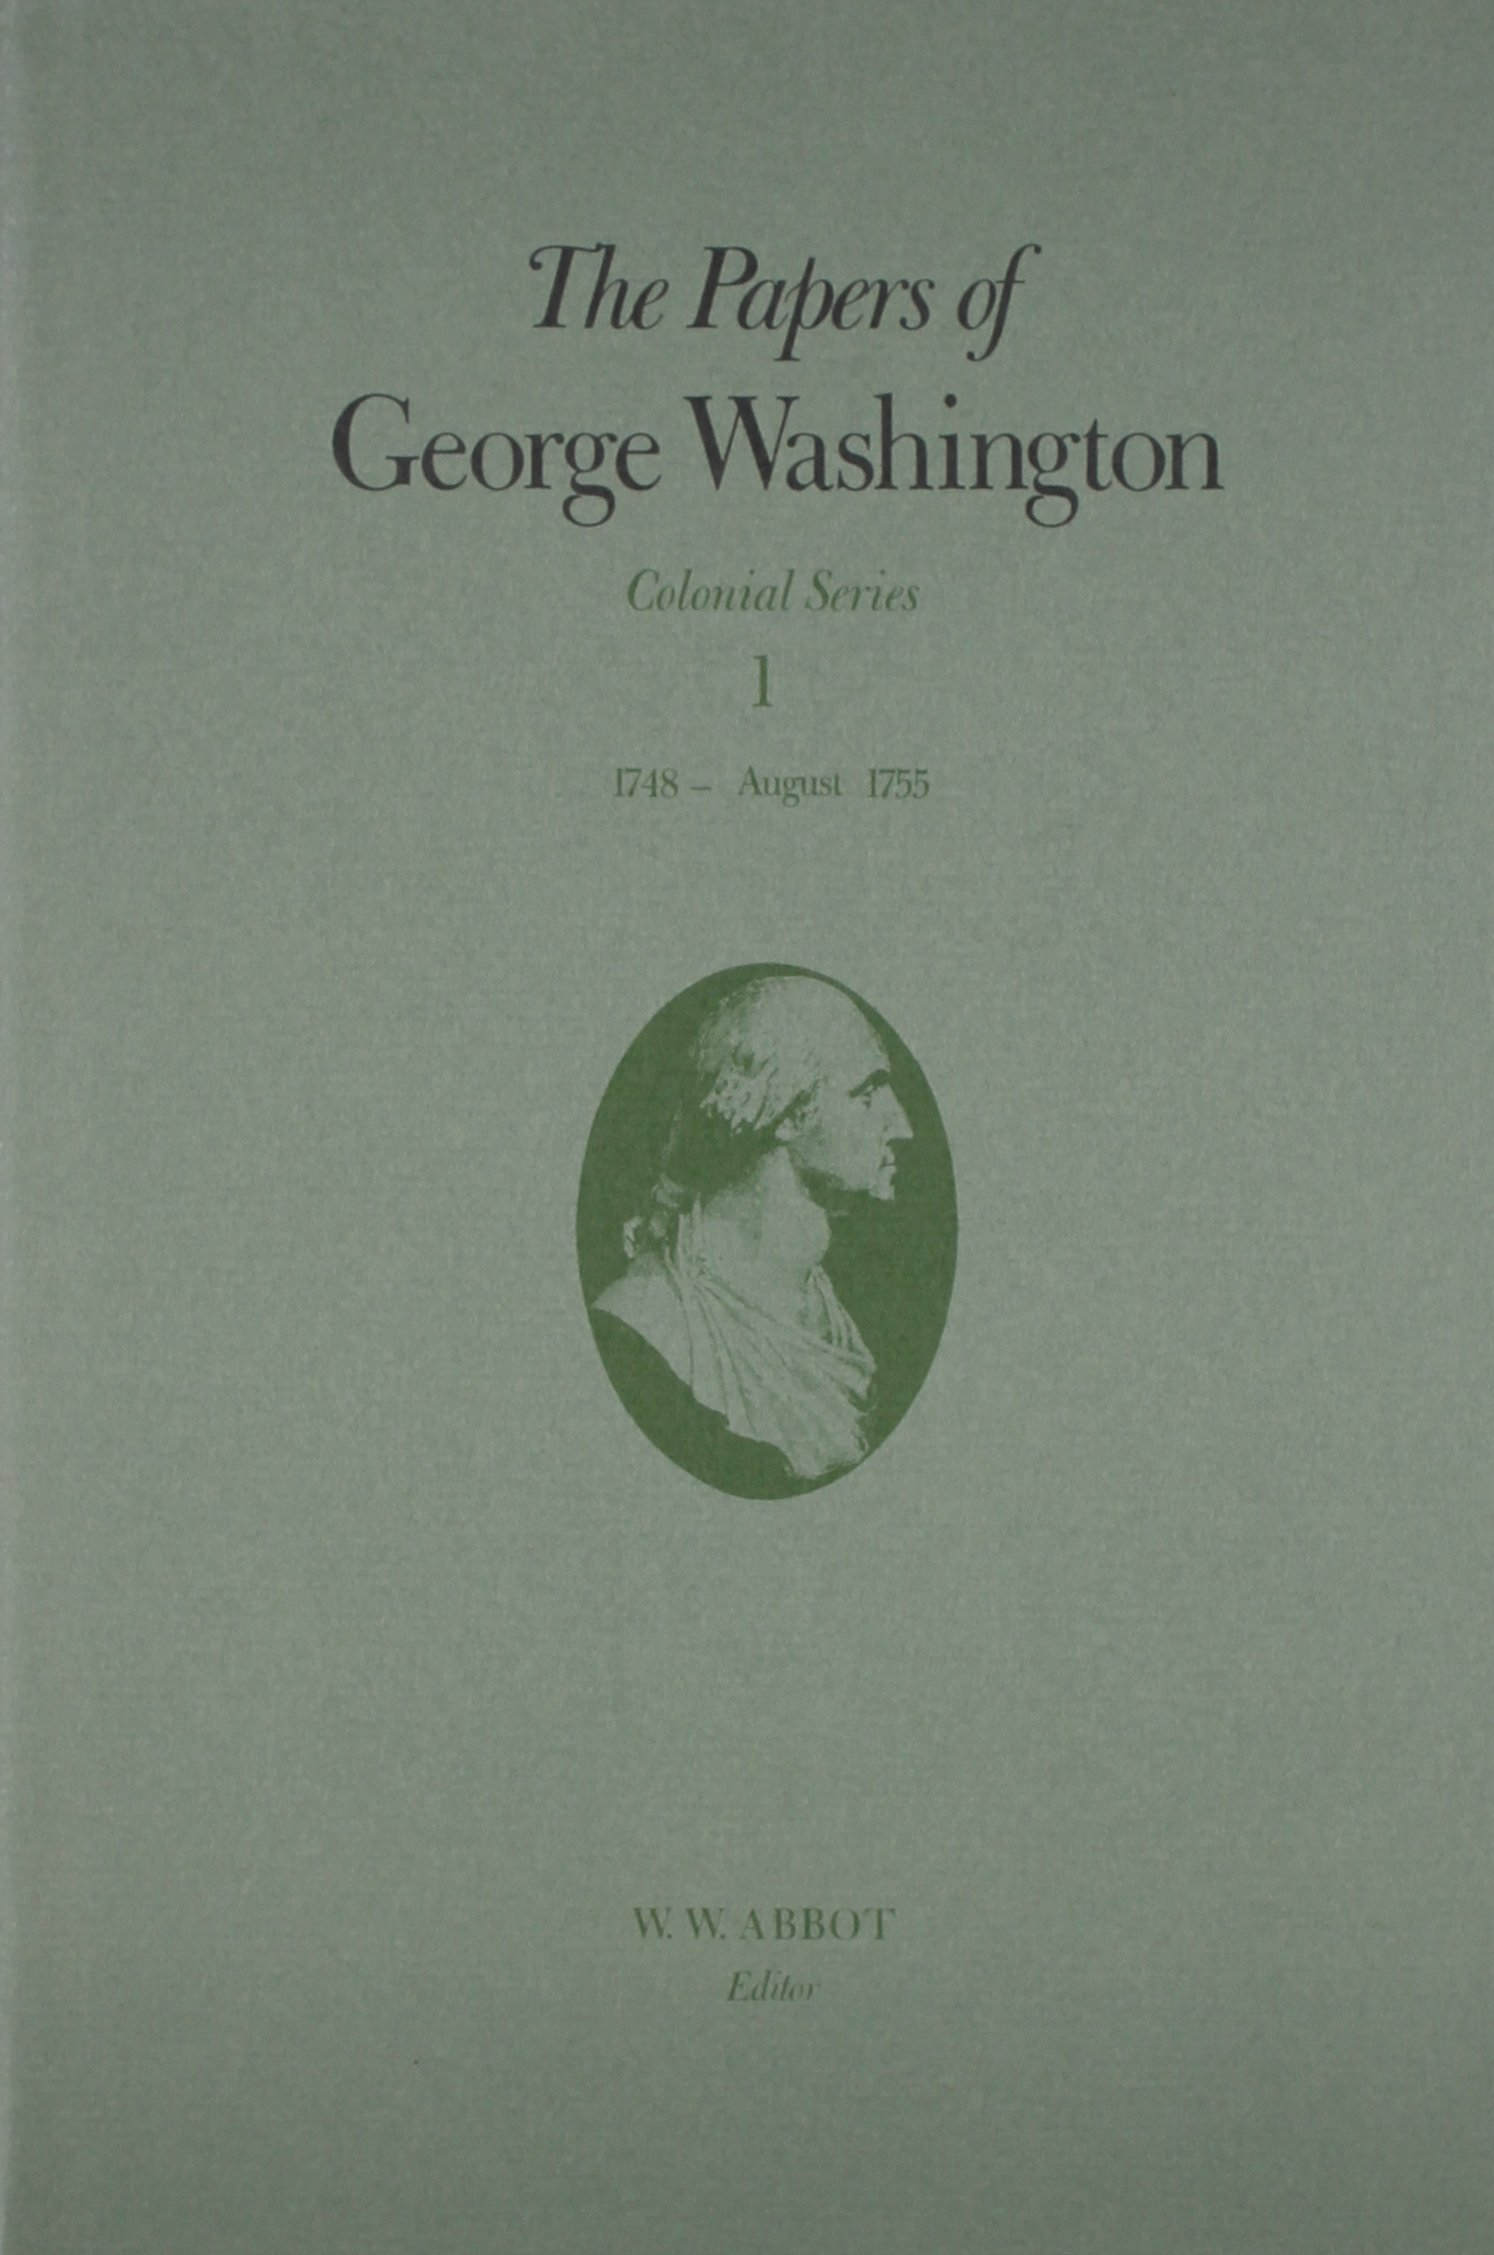 The Papers of George Washington: 1748-August 1755 (Colonial Series)